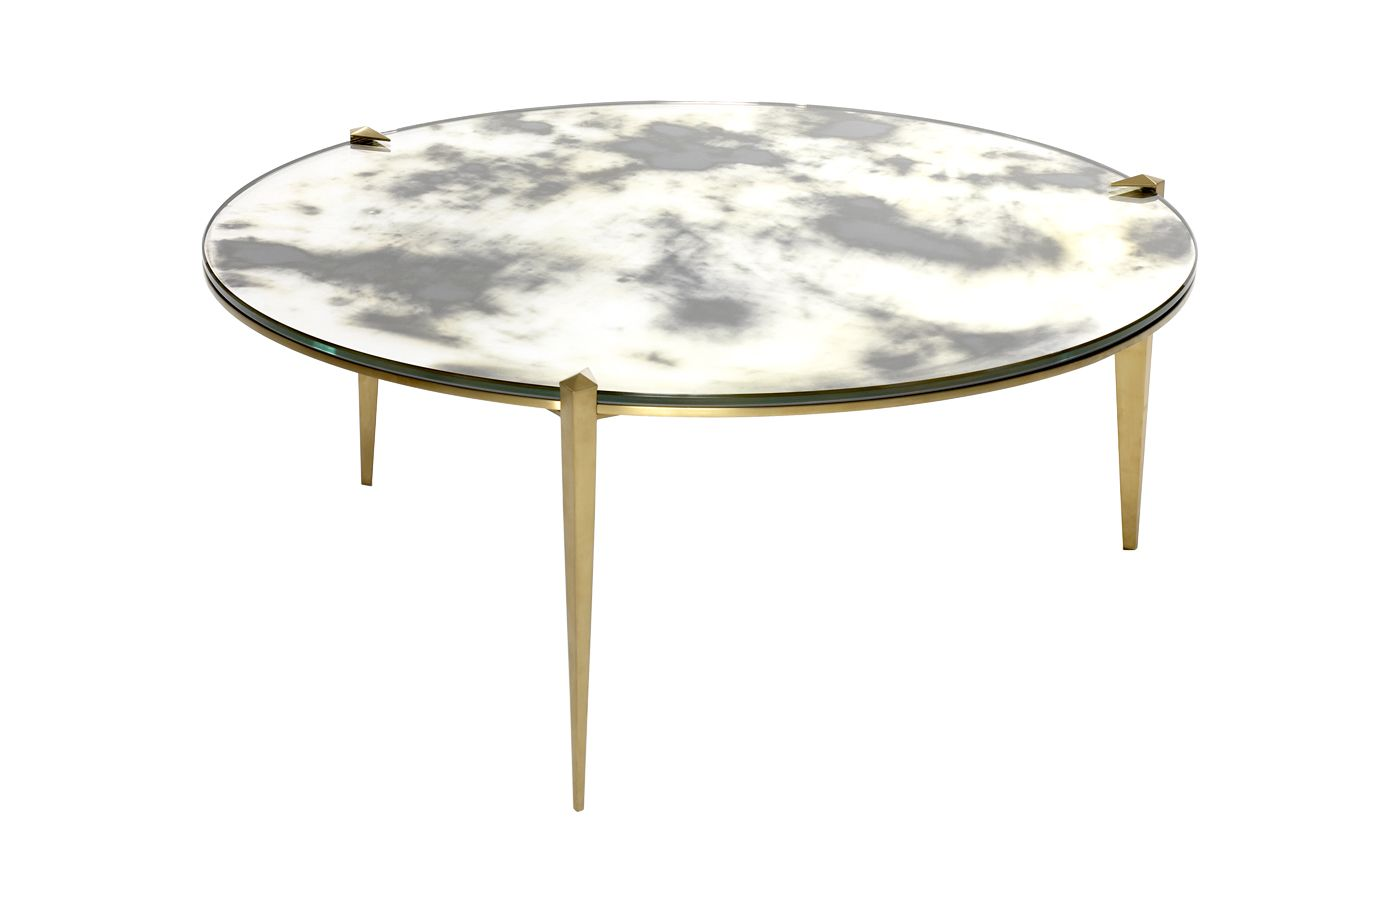 Lorin Marsh Furniture Table Cocktail Tables [ 912 x 1400 Pixel ]